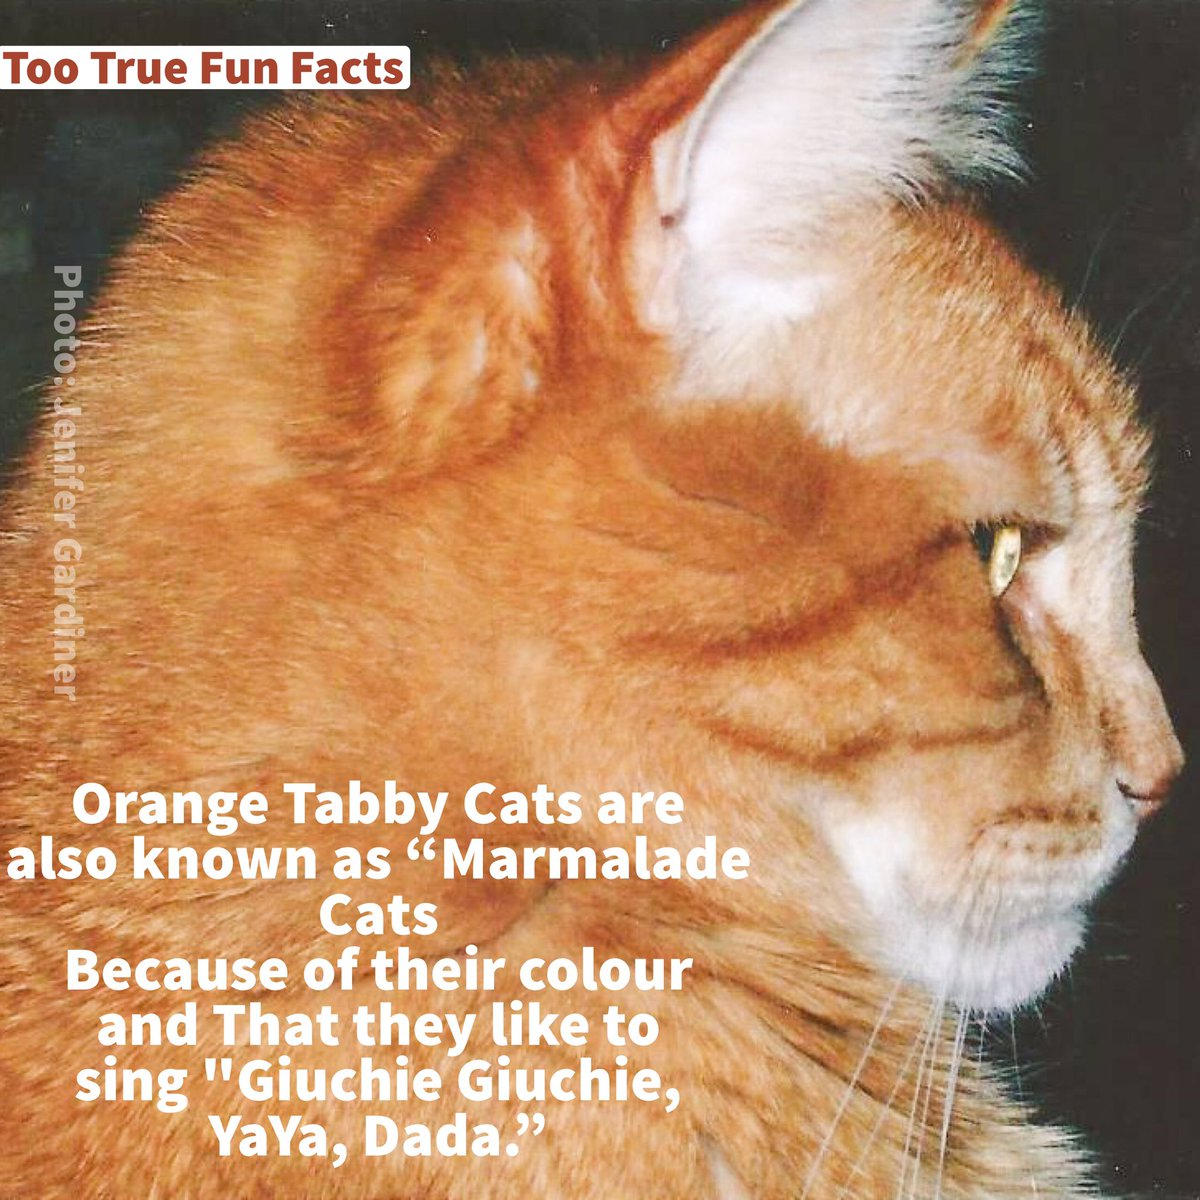 Caturday Fun Fact. #Caturday #cats #cat #animal #animals #animalkingdom #SONGS #song #comedy #funny #meme #memes #parody #satire #lol #lols<br>http://pic.twitter.com/0NoXpODdZW